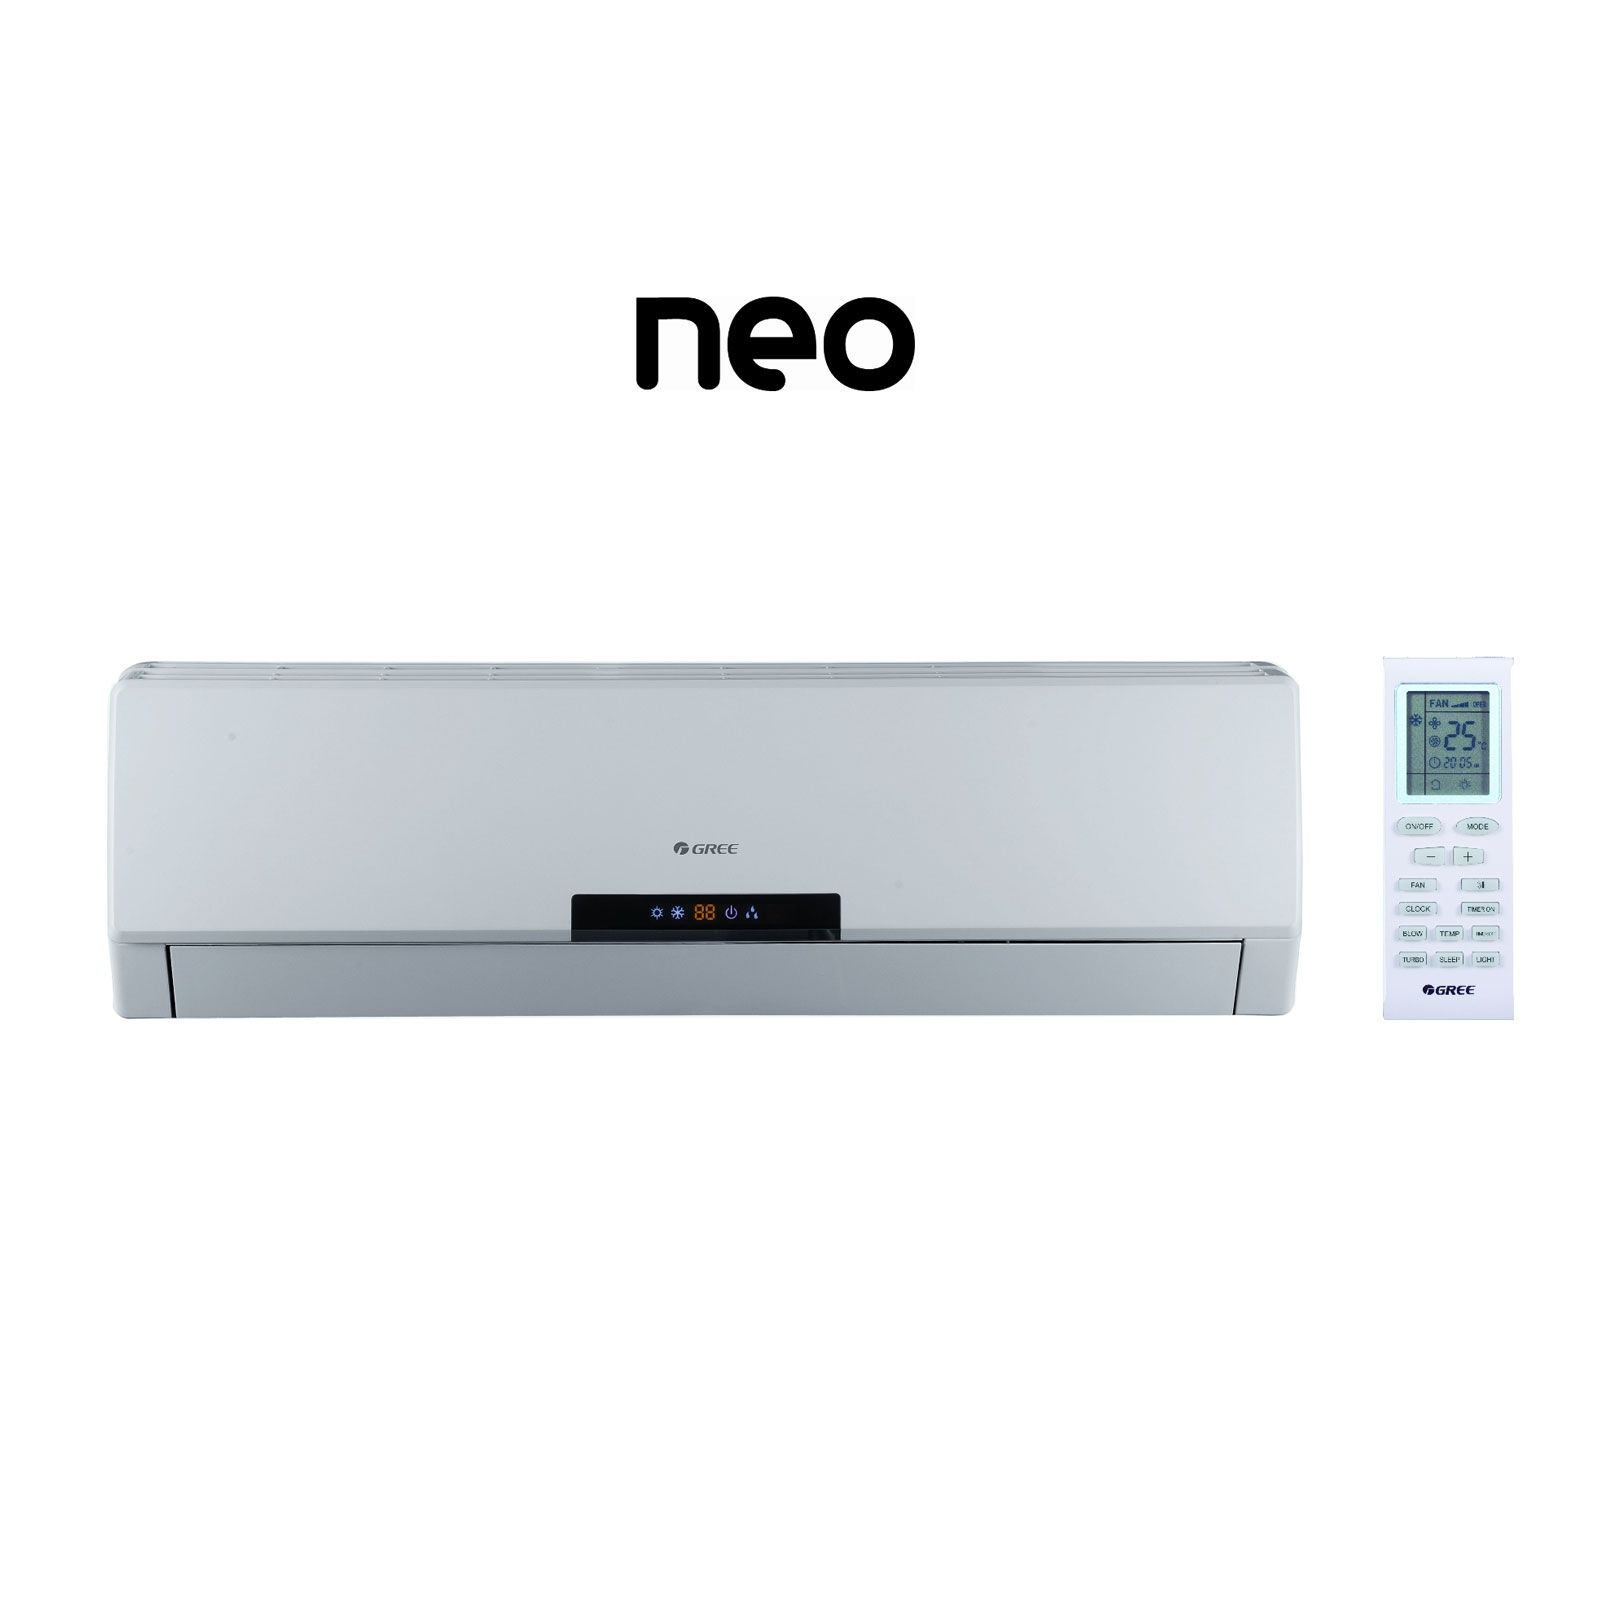 GREE NEO24HP230V1AH - 2 Ton 16 SEER NEO Ductless Mini-Split Indoor Unit 208-230 V